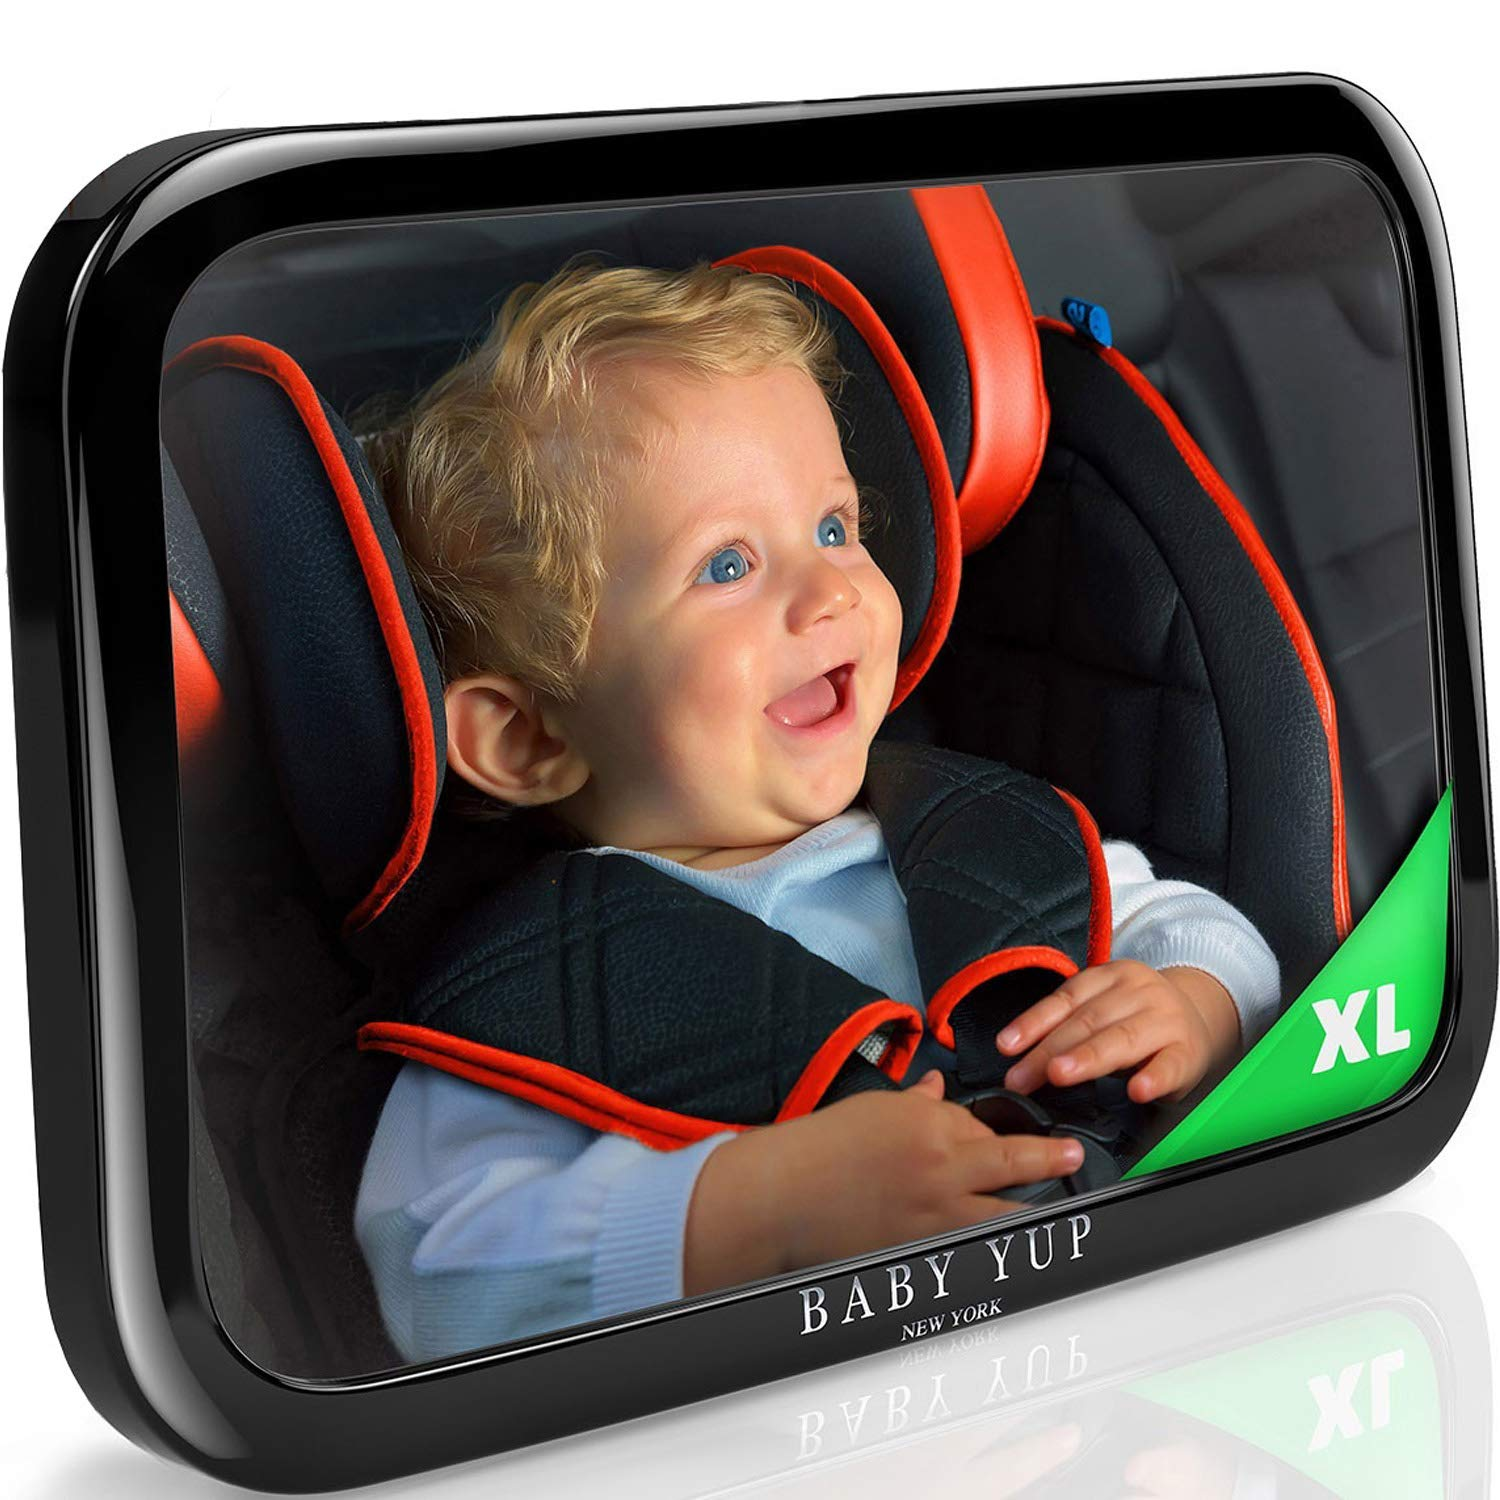 Baby Car Mirror for Rear Facing Car Seat - Fully Adjustable, Shatterproof, And Built To Stay In Place - Best Extra Large Back Seat Car Baby Mirror To Check On Your Baby While Driving by BABY YUP